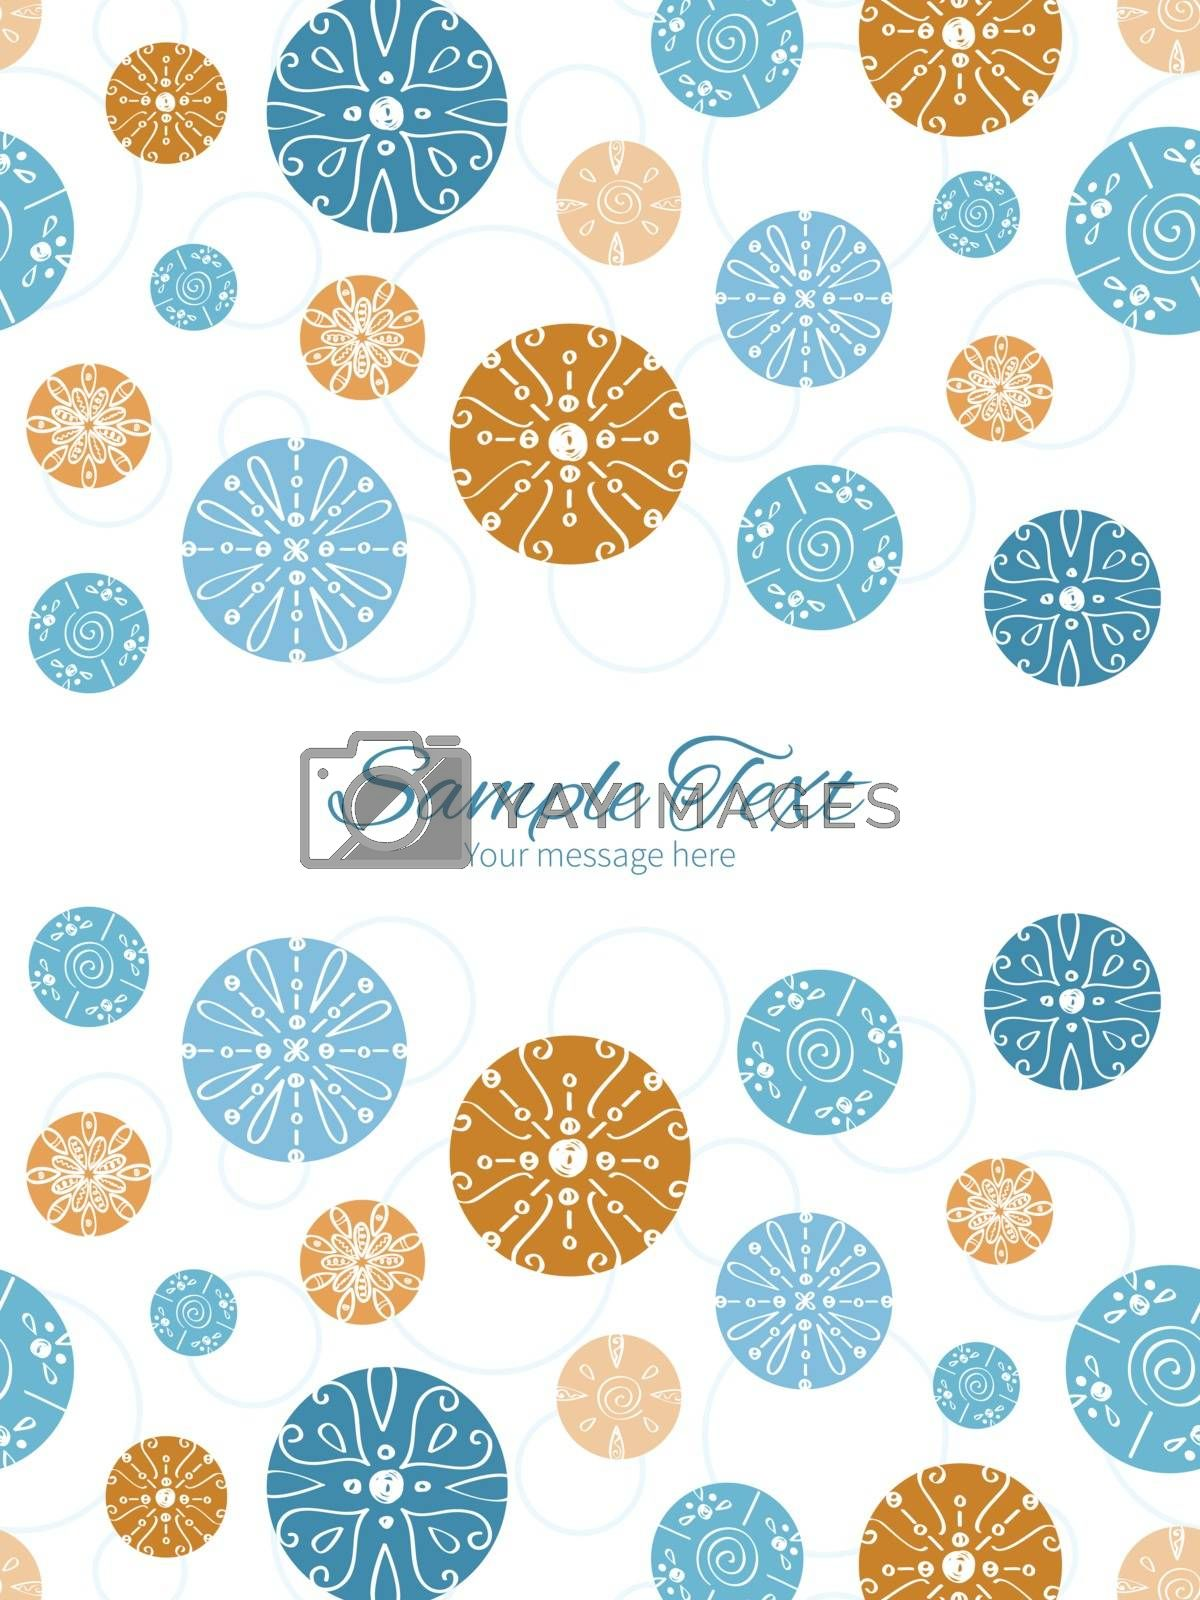 Vector abstract blue brown vintage circles back vertical double borders frame invitation template graphic design